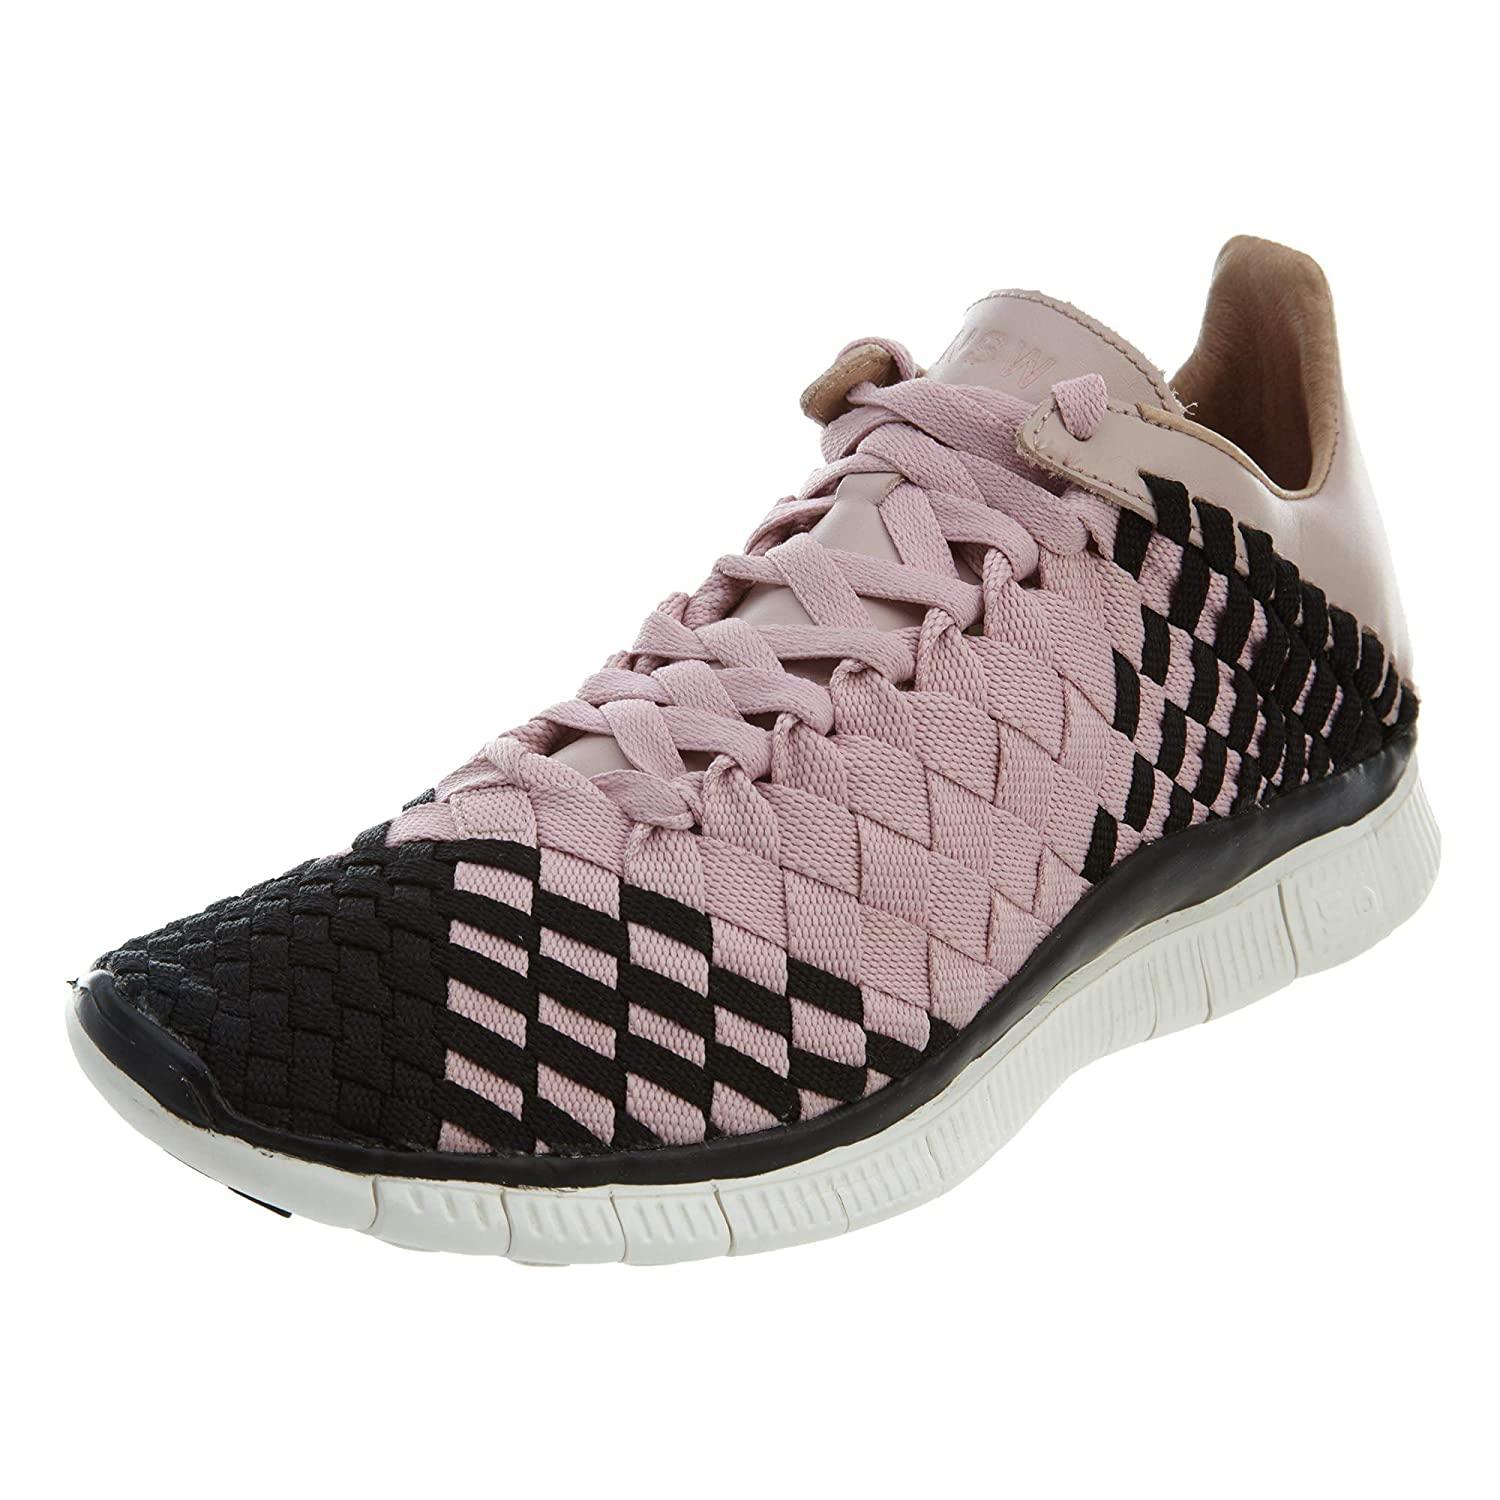 outlet store 0fb8f 398cd Amazon.com   Nike Womens Free Inneva Woven Sp Black Champagne-Sail  598153-050 10   Fashion Sneakers